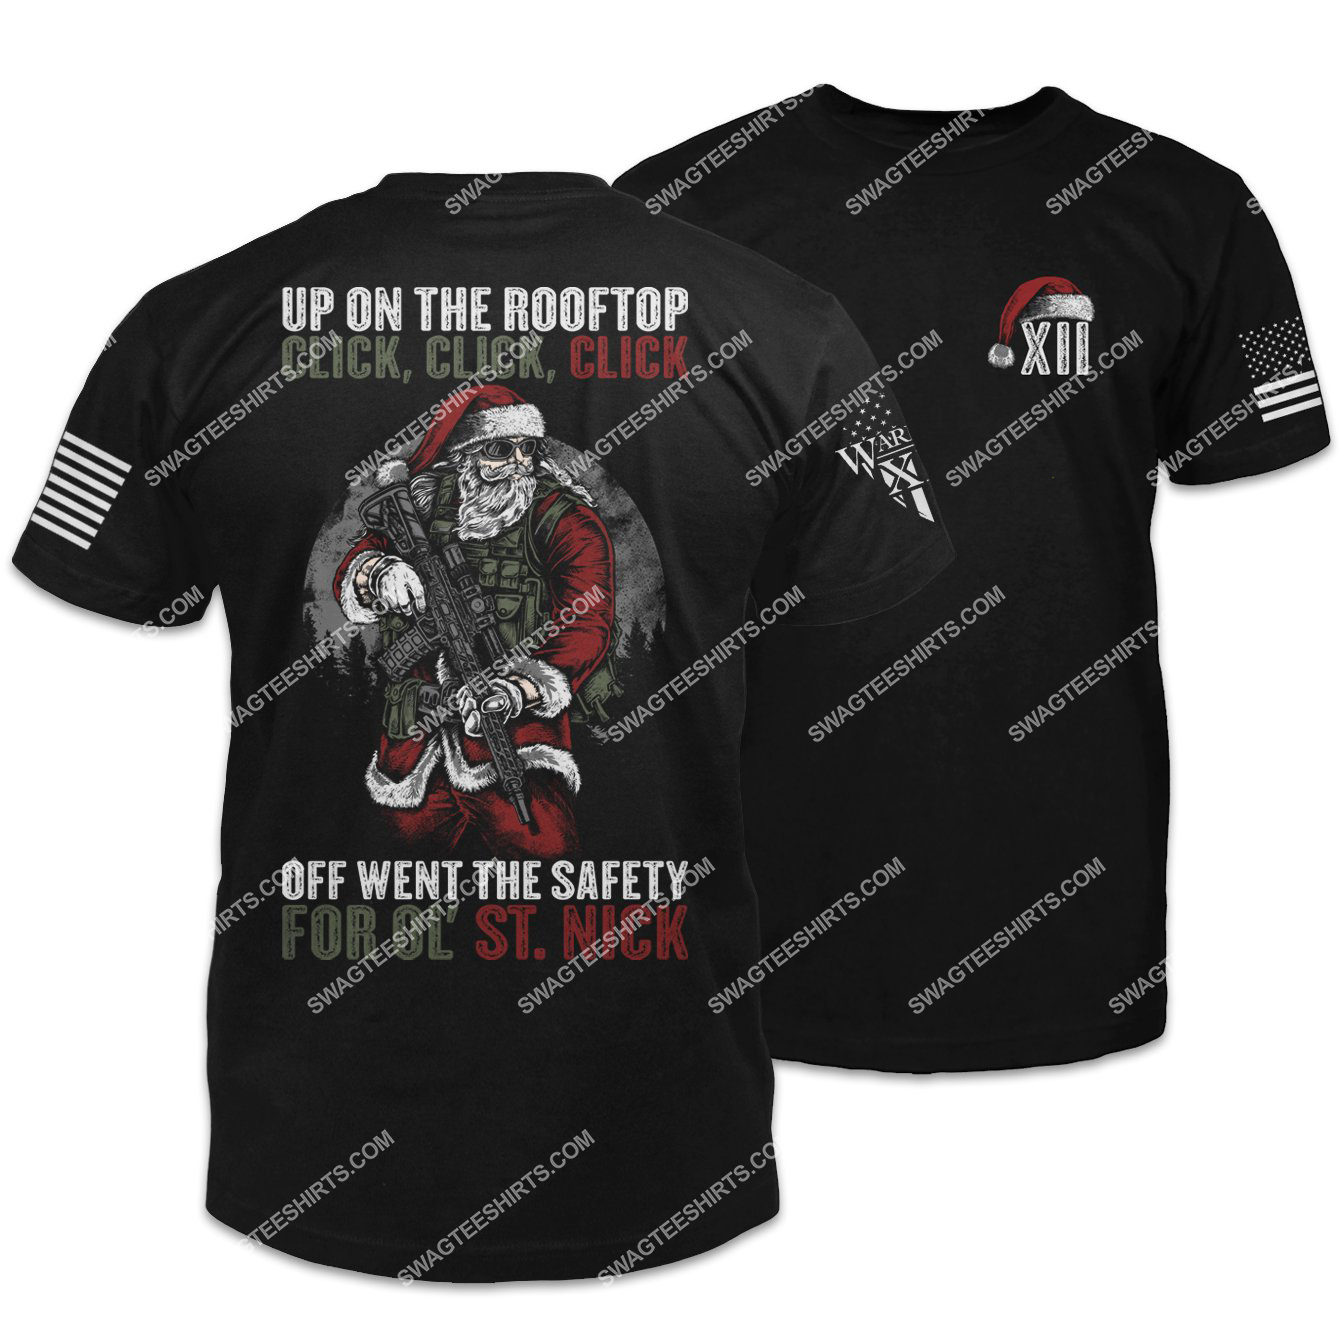 up on the rooftop off went the safety for ol' st nick santa on patrol shirt 1 - Copy (2)